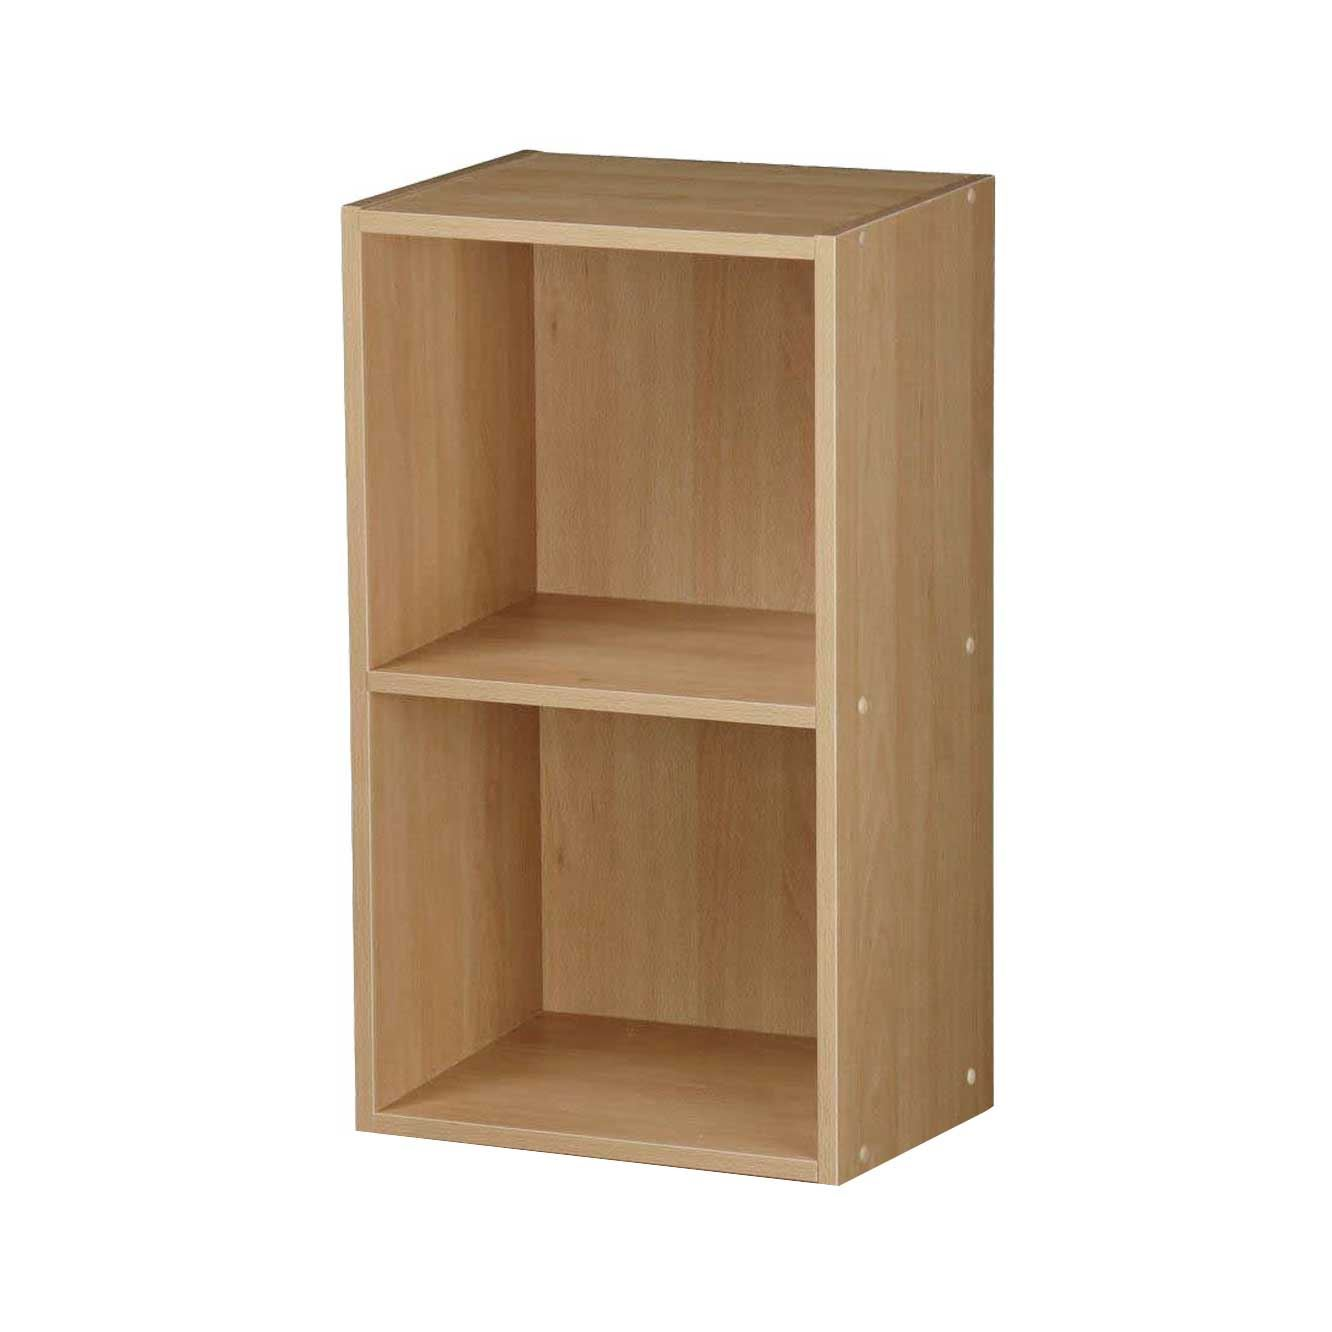 Wooden-Storage-Unit-Cube-2-3-4-Tier-Strong-Bookcase-Shelving-Home-Office-Display thumbnail 23